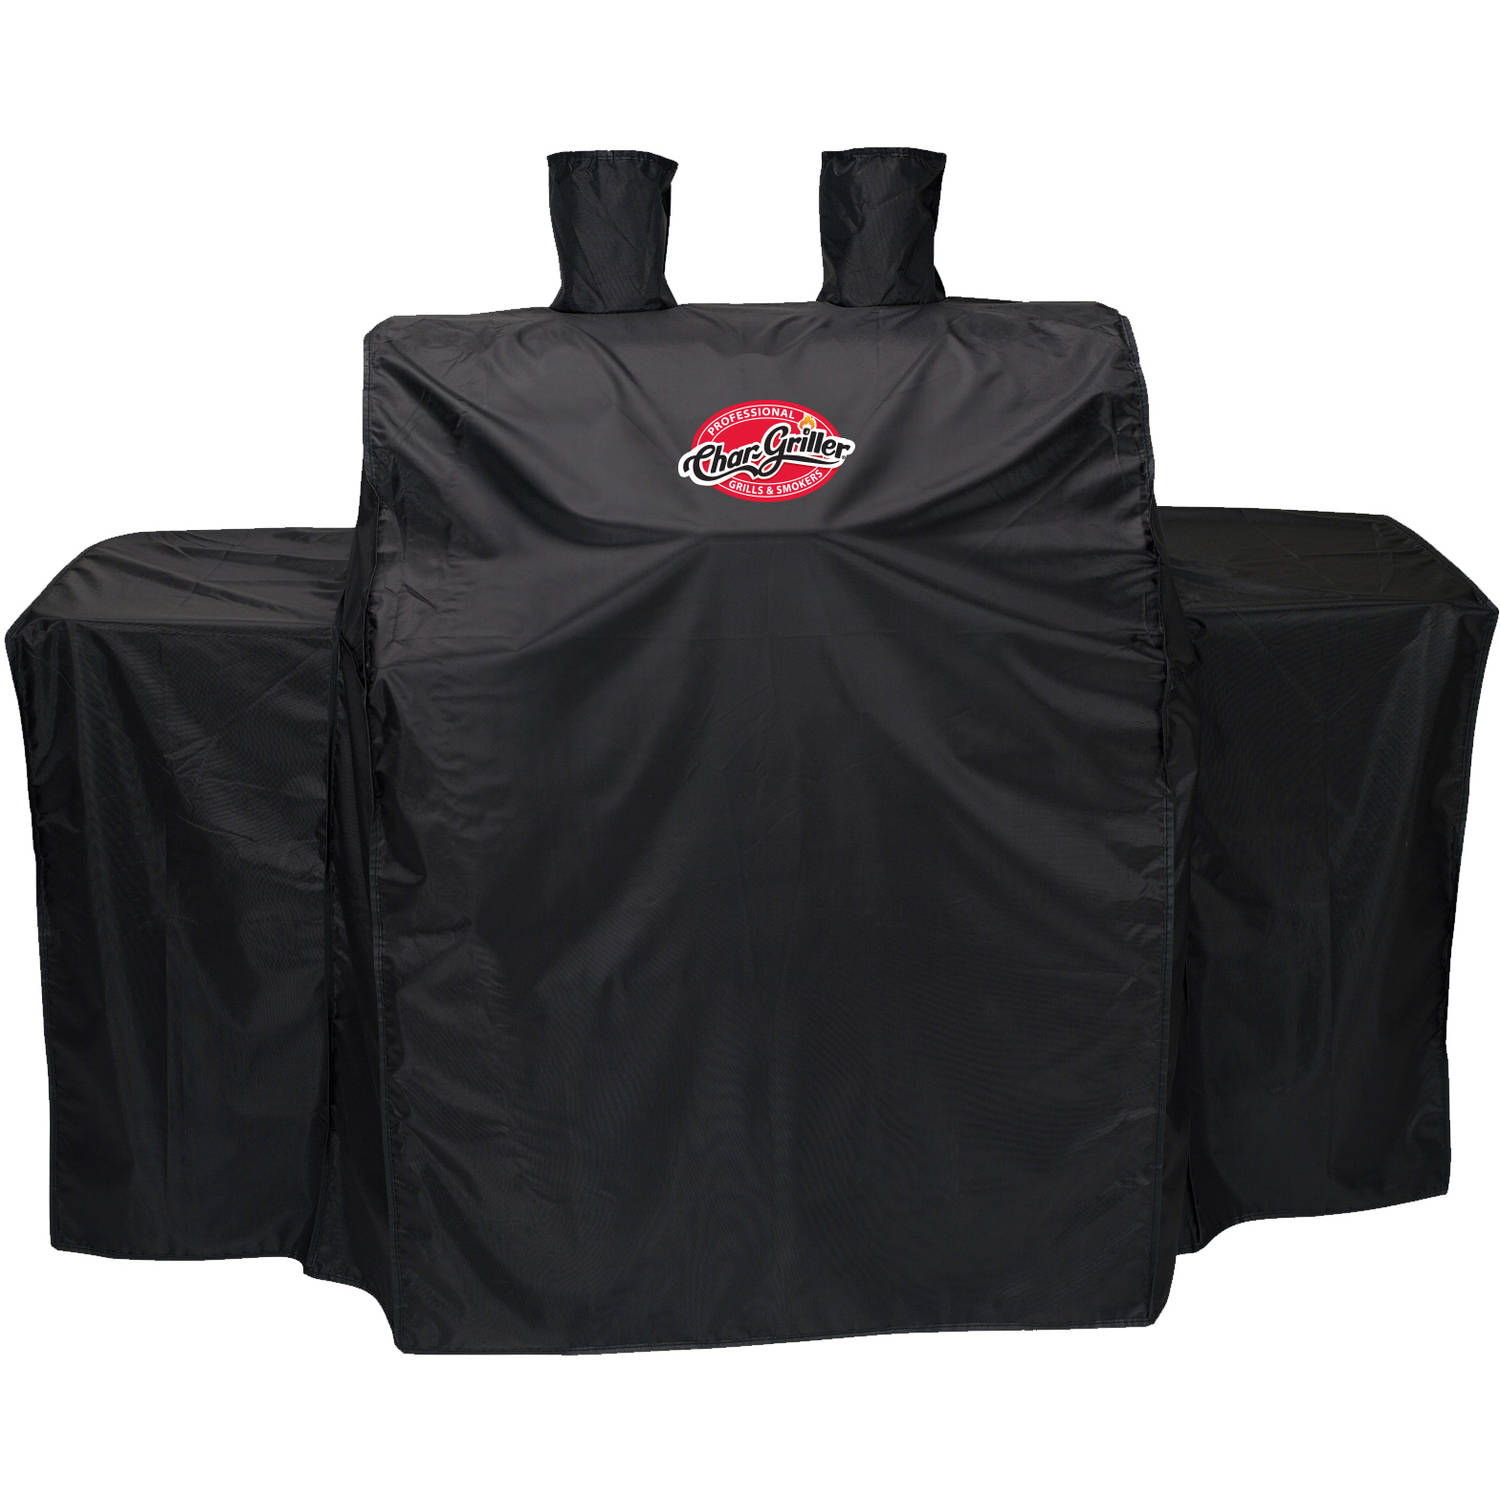 CharGriller 3 Burner Gas Grill Cover